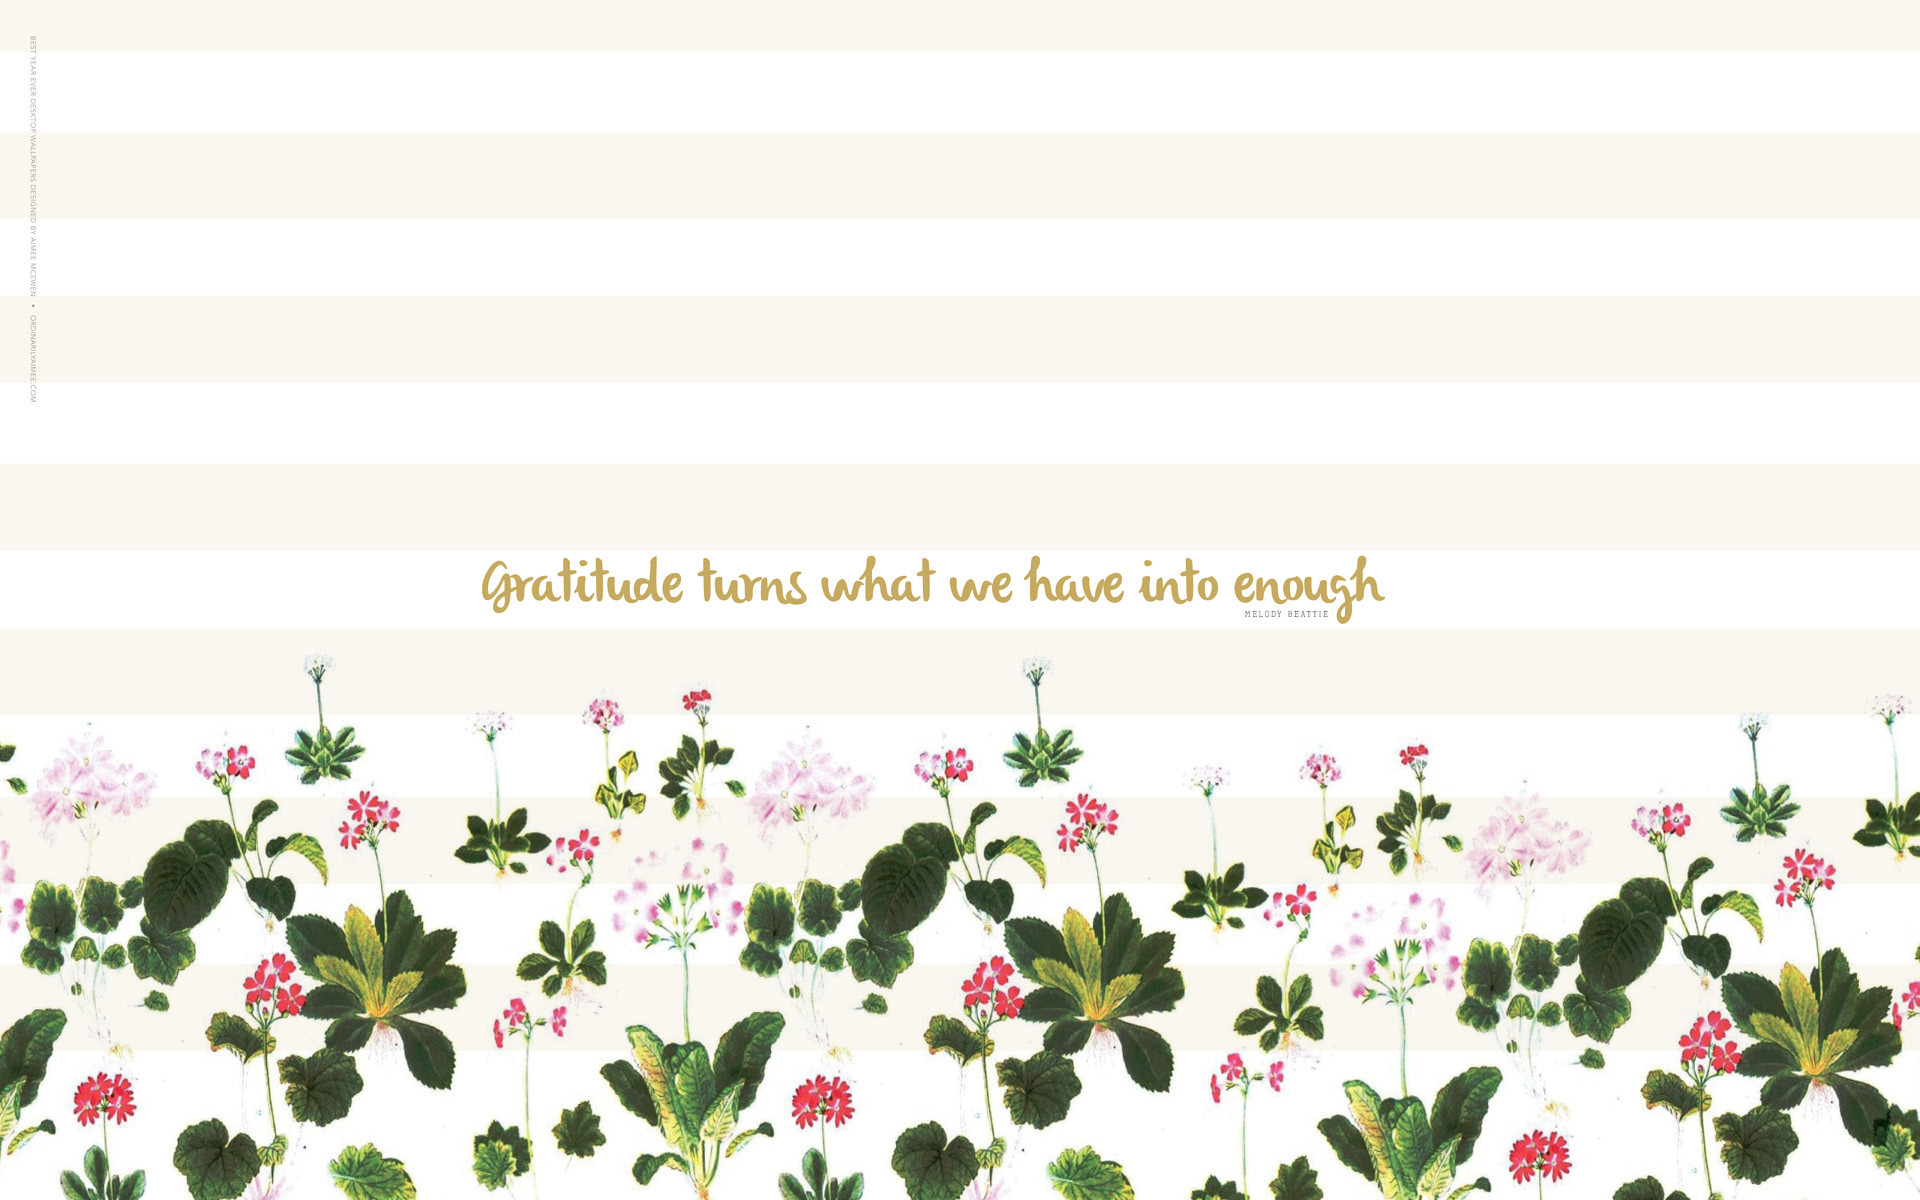 1920x1200 Mint white stripes floral Gratitude desktop wallpaper background | iPhone  and desktop wallpapers | Pinterest | Wallpaper backgrounds, Wallpaper and  Mac ...